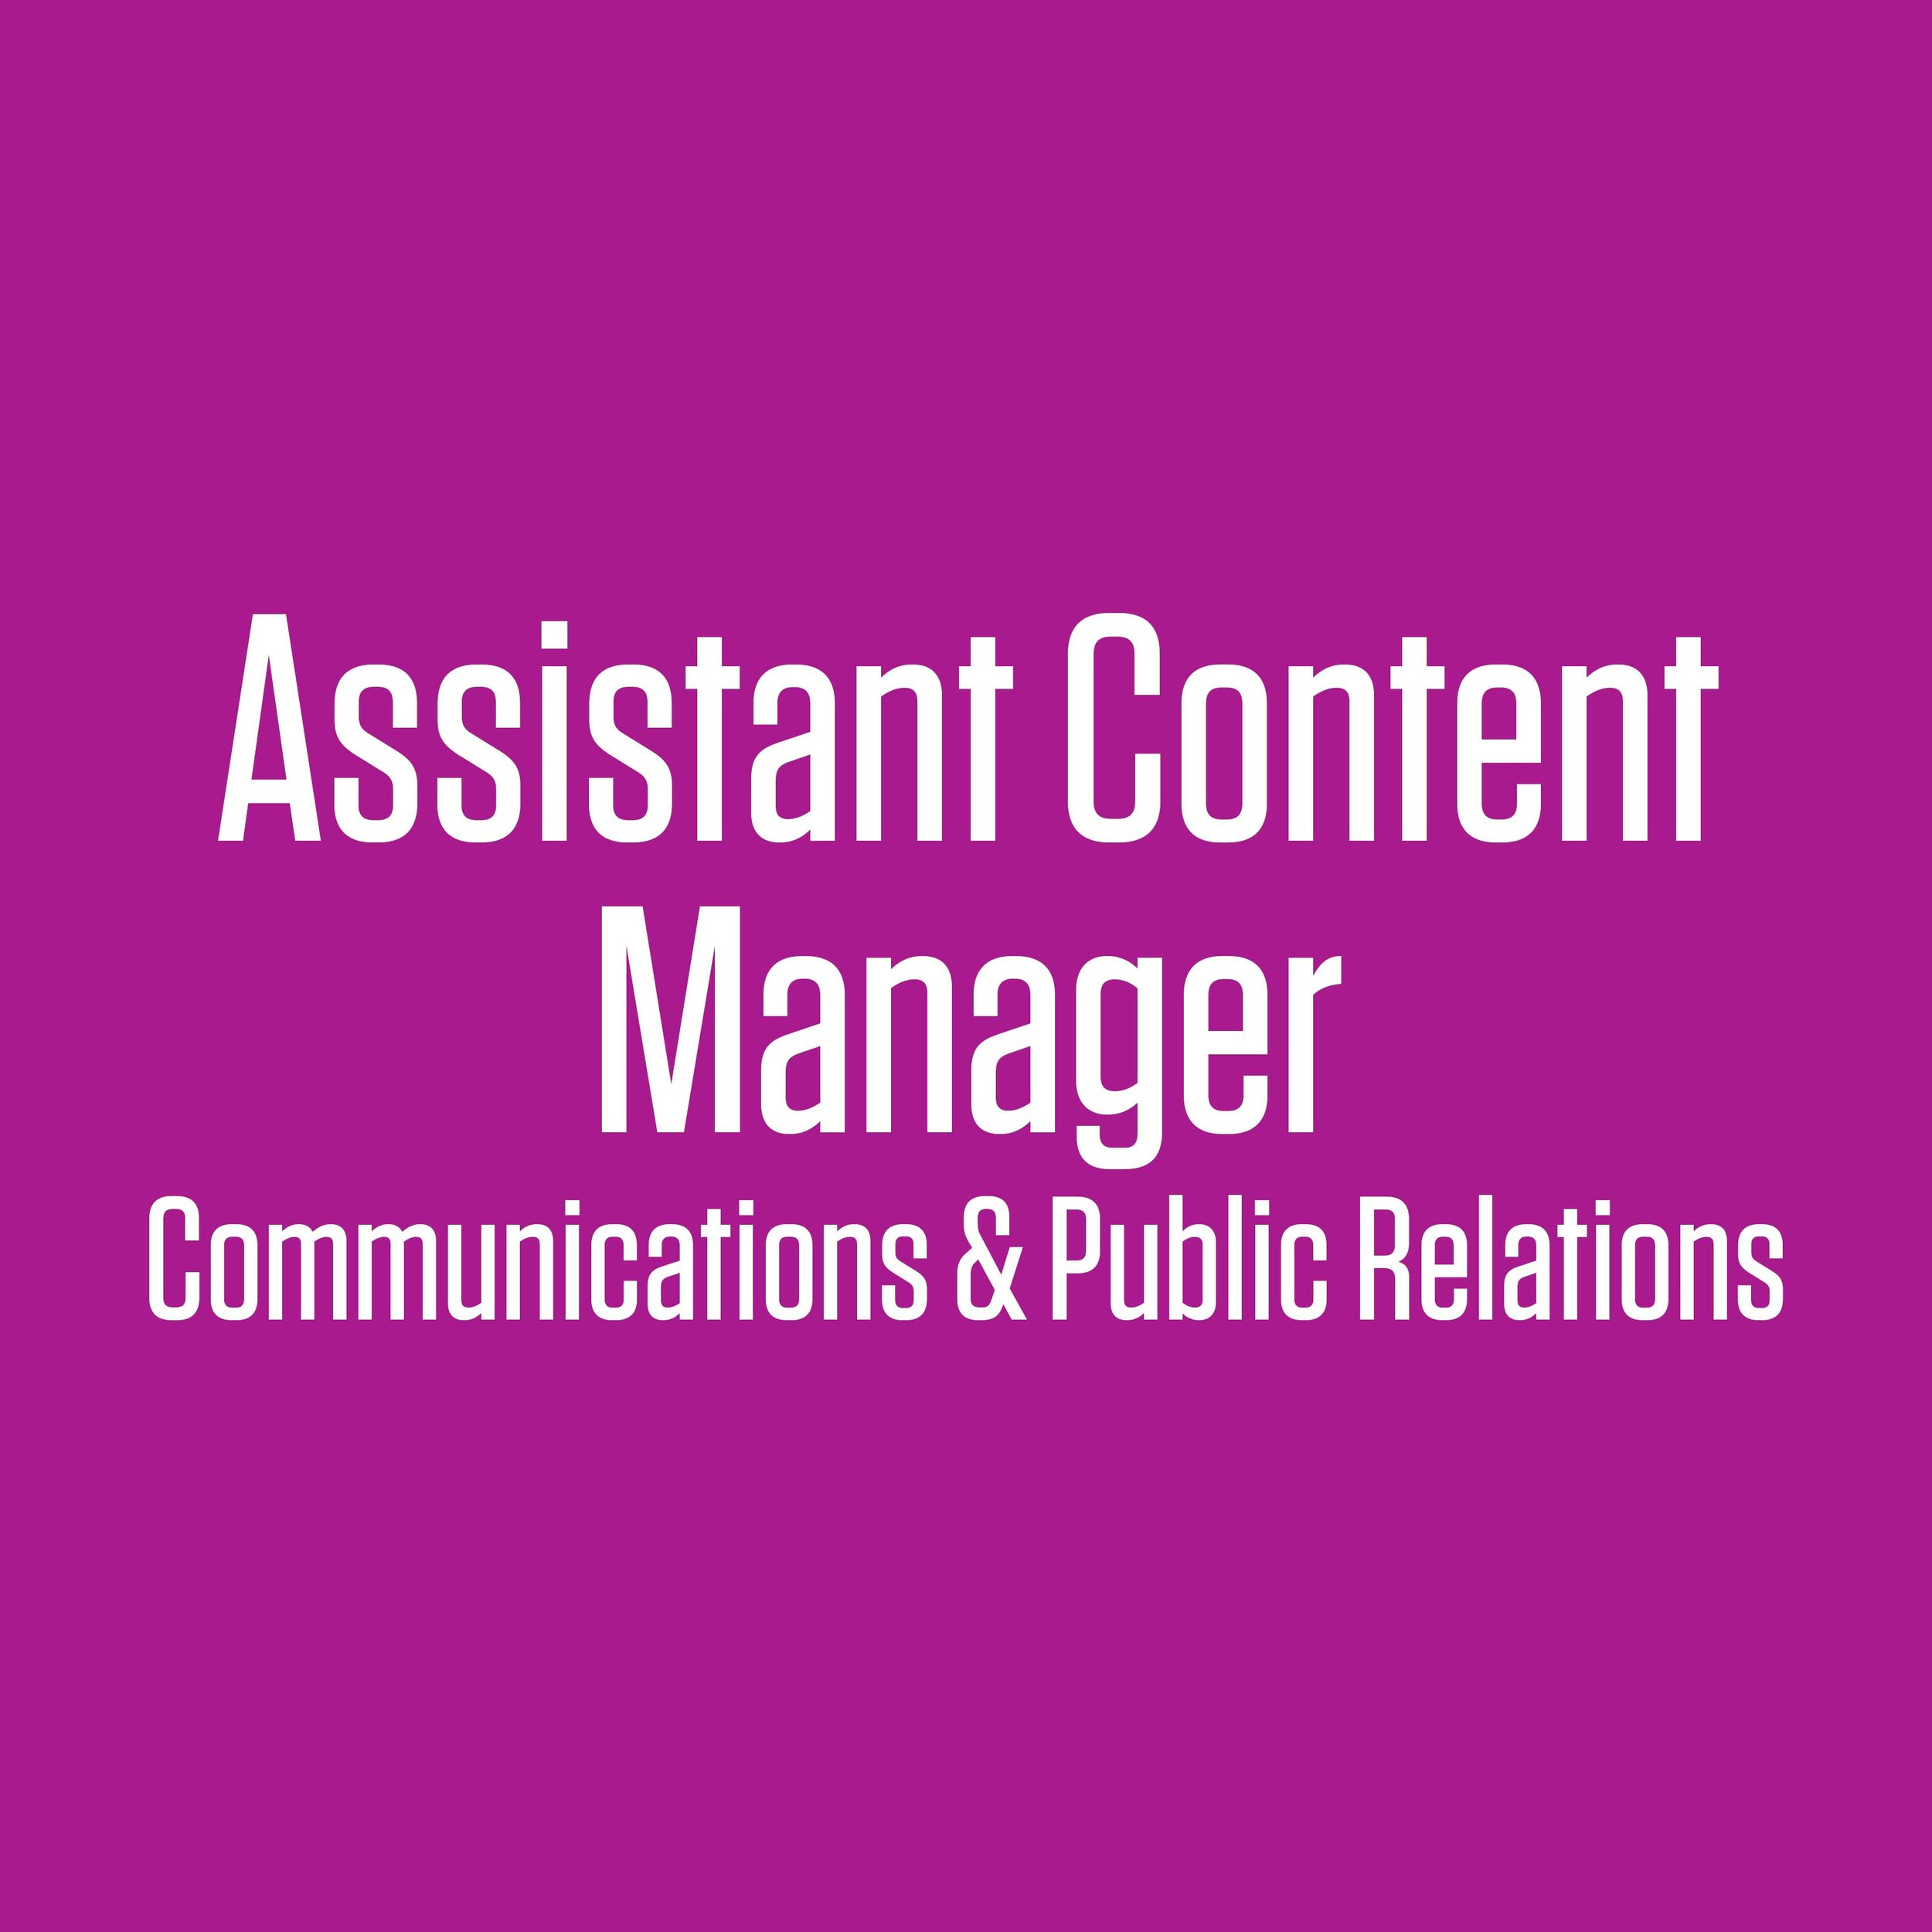 assistant content manager.jpg